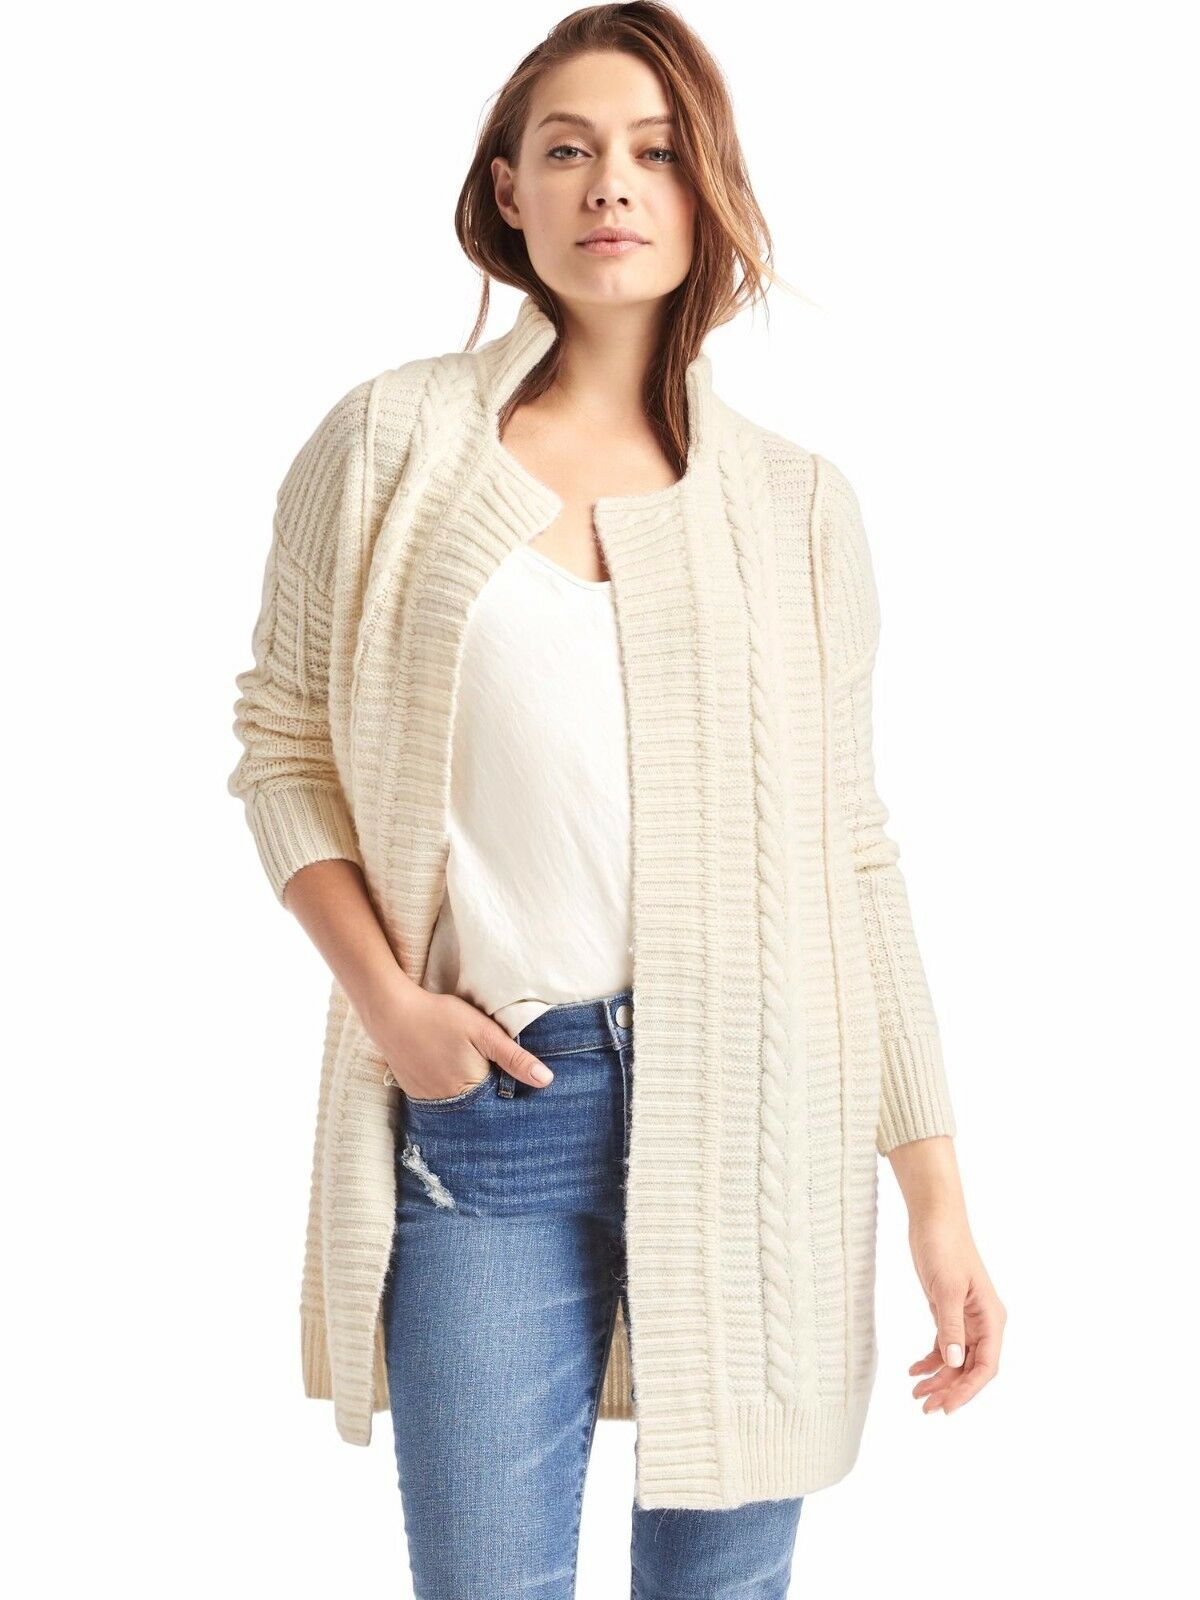 NWT Gap Cable Knit Notch cardigan, Snow Cap SIZE L          v1016